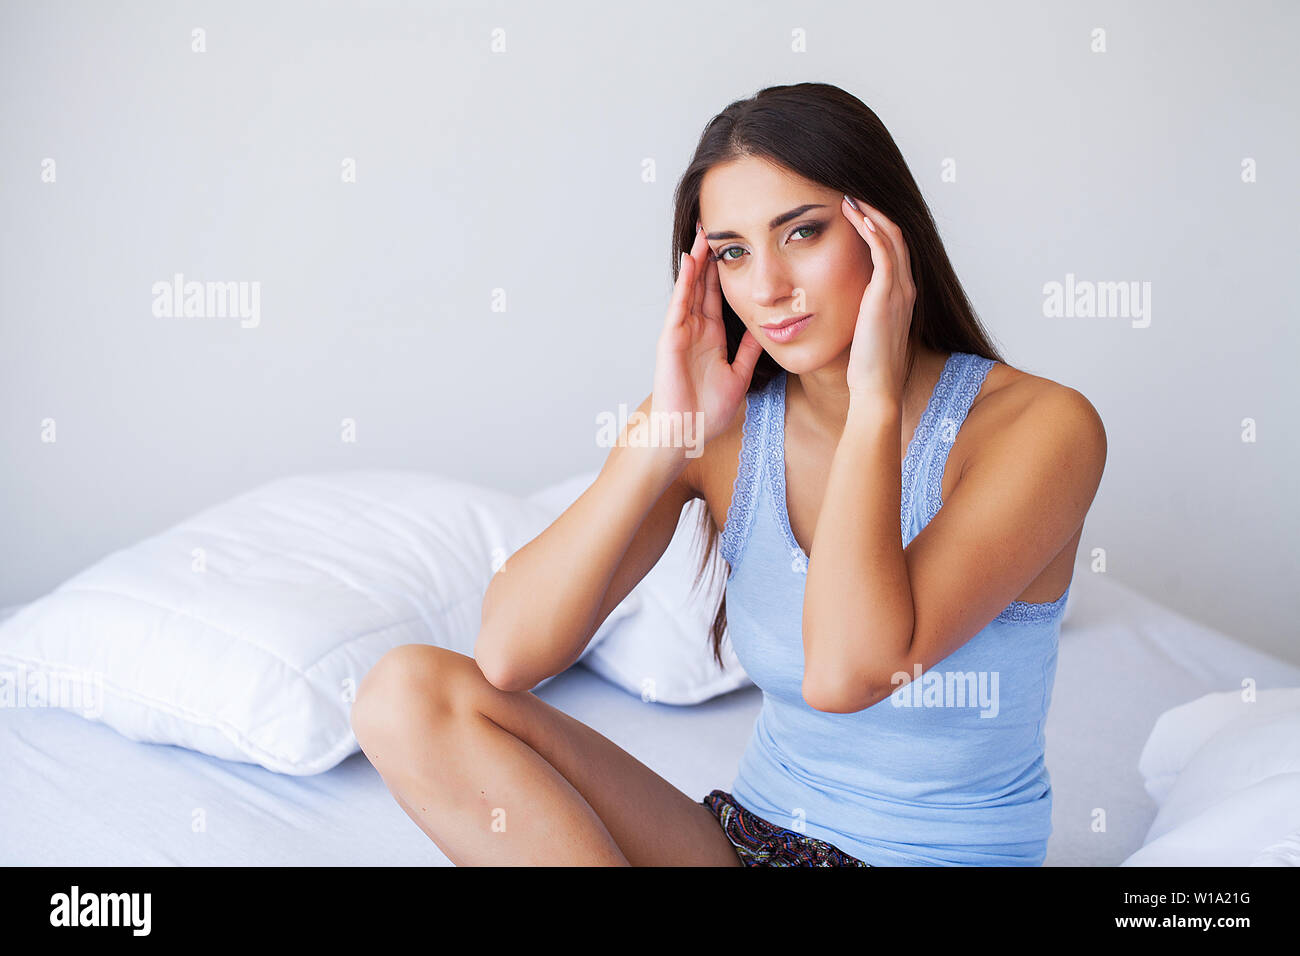 Beautiful Woman Feeling Sick, Having Headache, Painful Body Pain - Stock Image